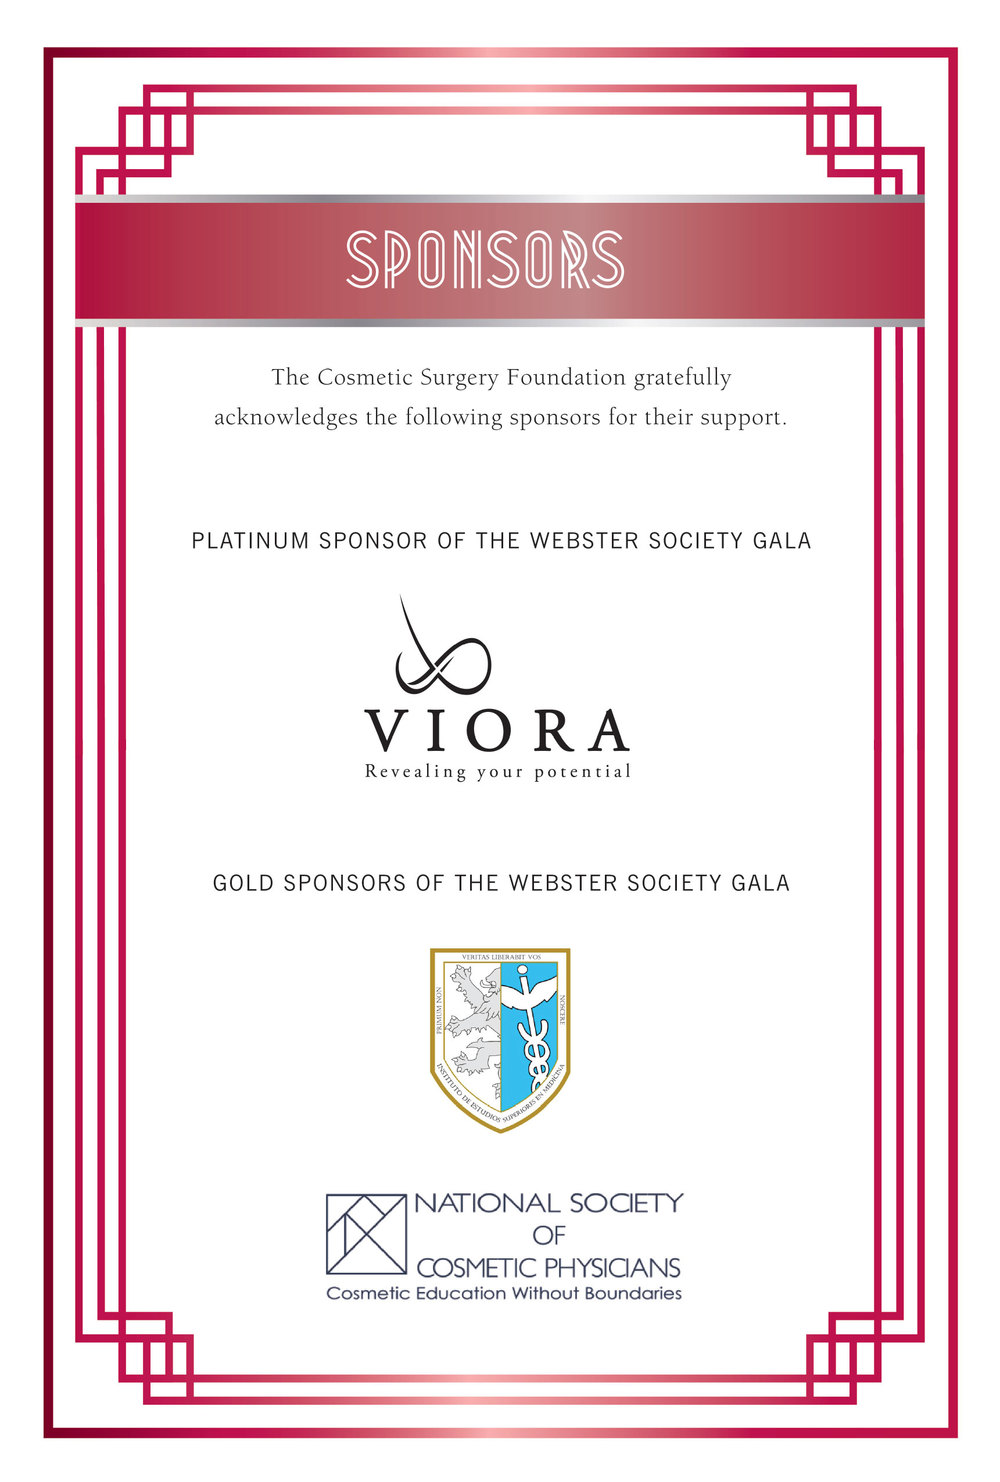 AACS | WEBSTER SOCIETY GALA